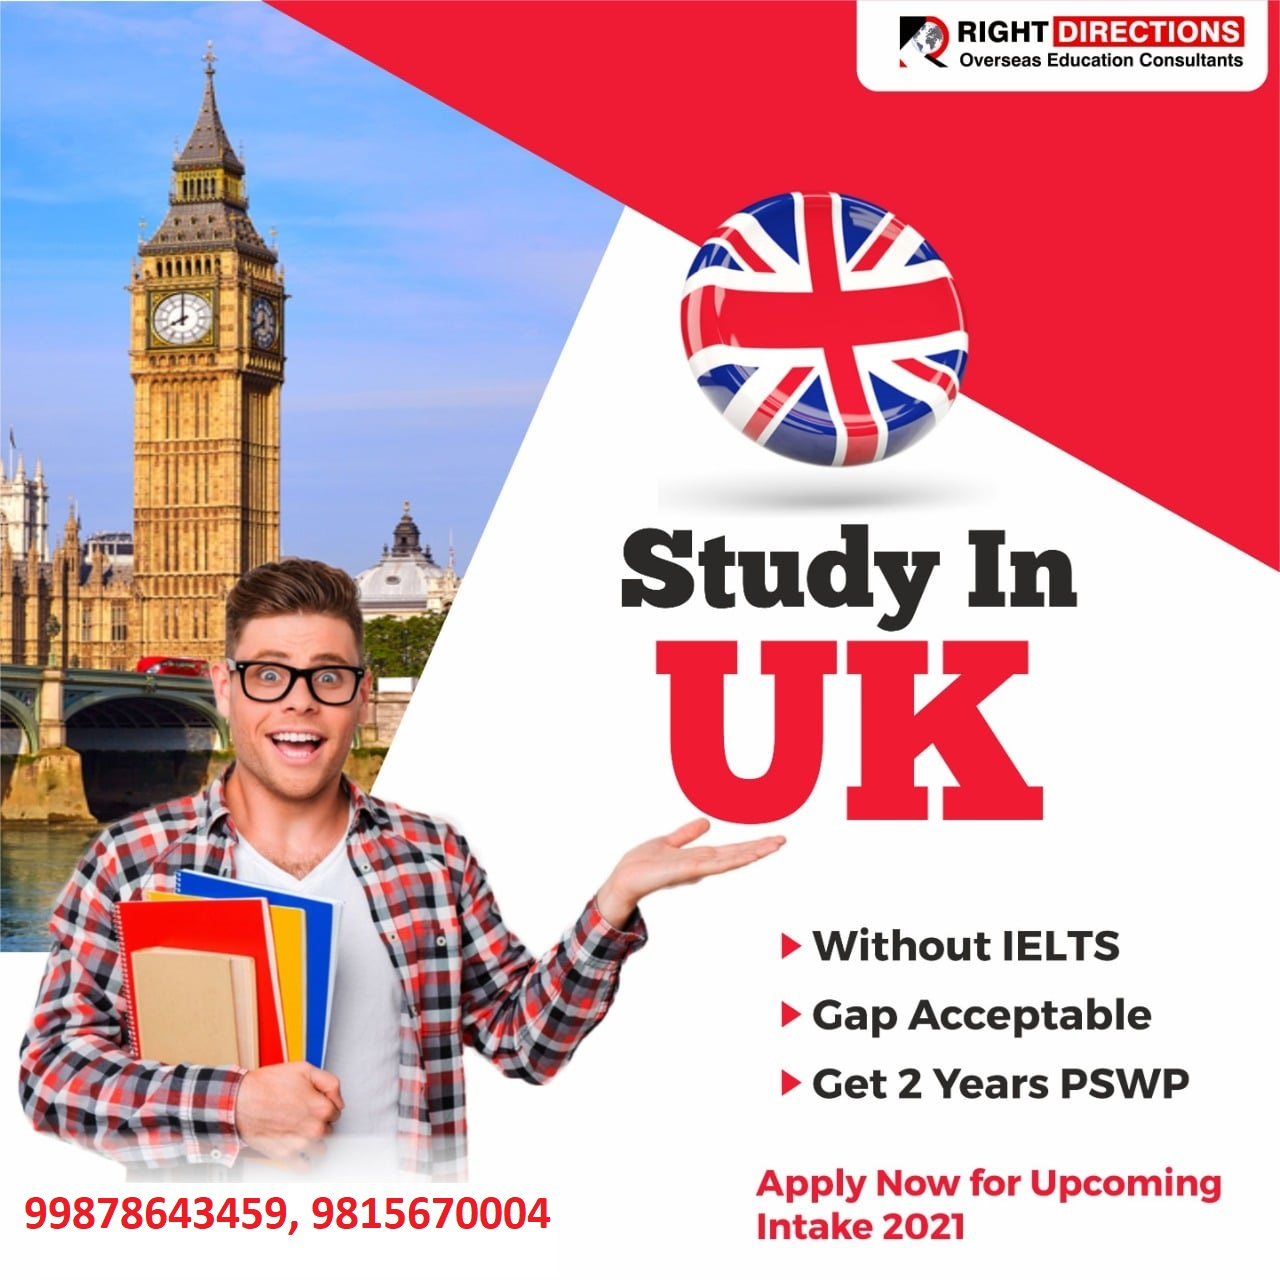 Study in UK  with or without IELTS    Right Directions   study abroad consultants  in Landran,best study abroad consultants  in Landran,UK study abroad consultants  in Landran - GL99334